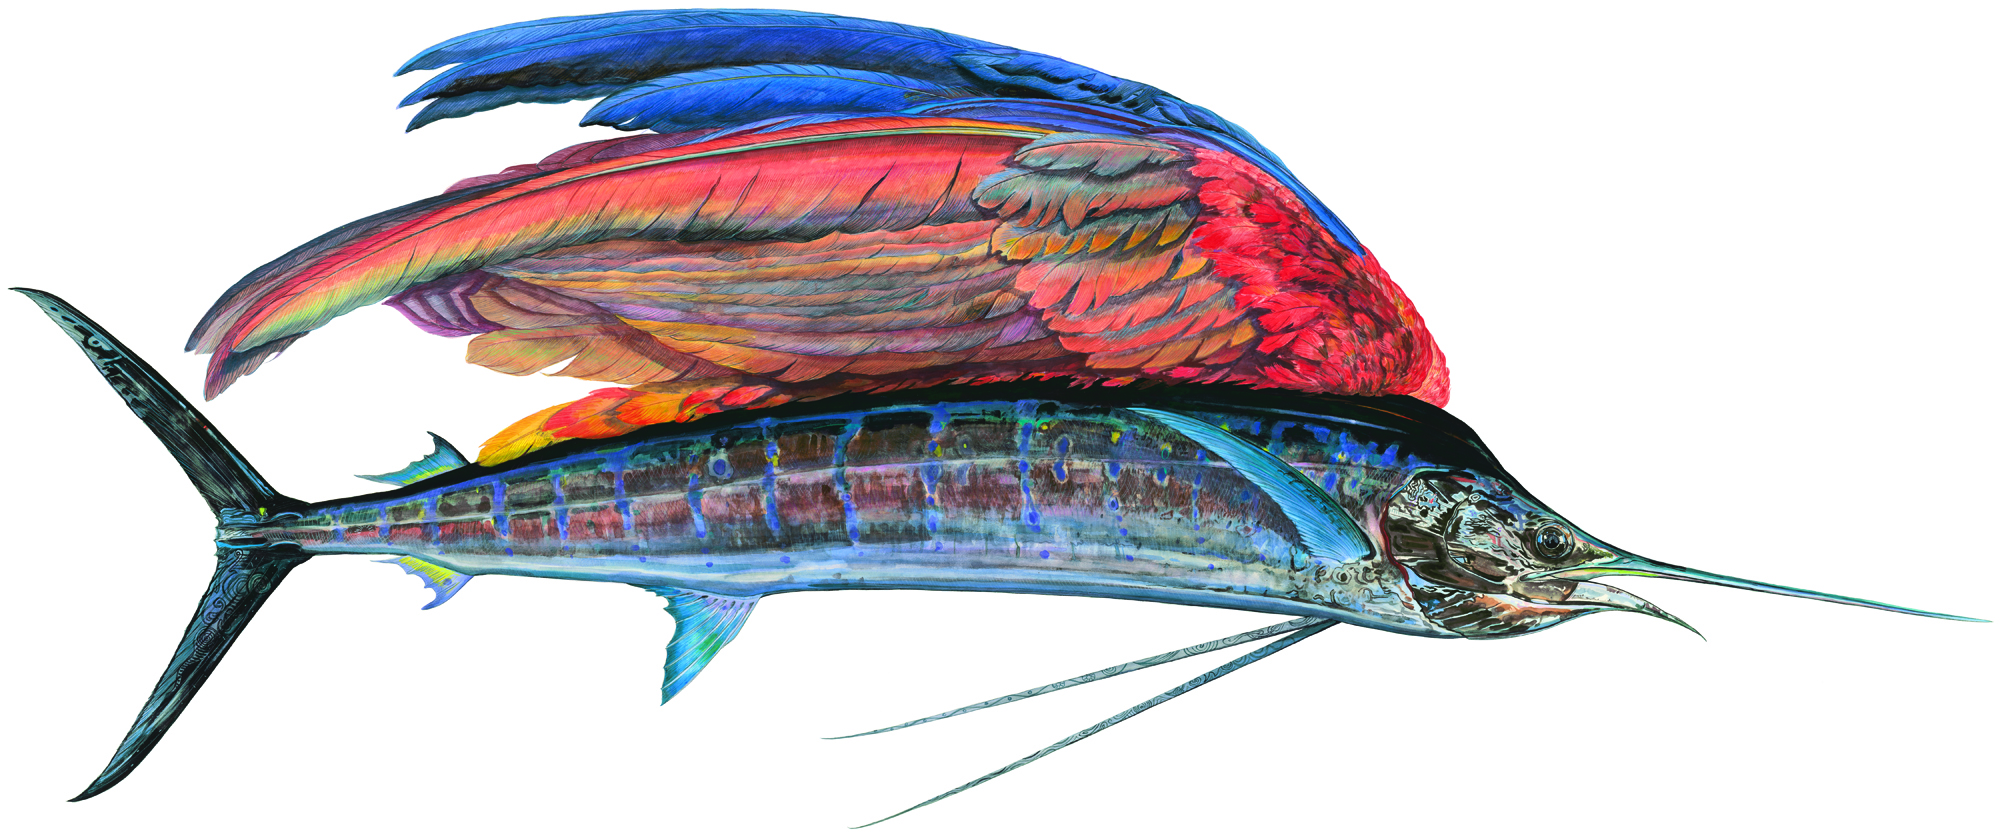 "Sailfishe, a monumental 10-foot painting of a hybrid creature, shows a glistening life-size Pacific sailfish that Prosek caught in Mexico -- only instead of a dorsel fin, the fish has a colorful parrot wing. ""With all that we know now, imagination is becoming extinct,"" says Prosek. ""I am trying to forget. I am pretending to be a naturalist from a time past."""